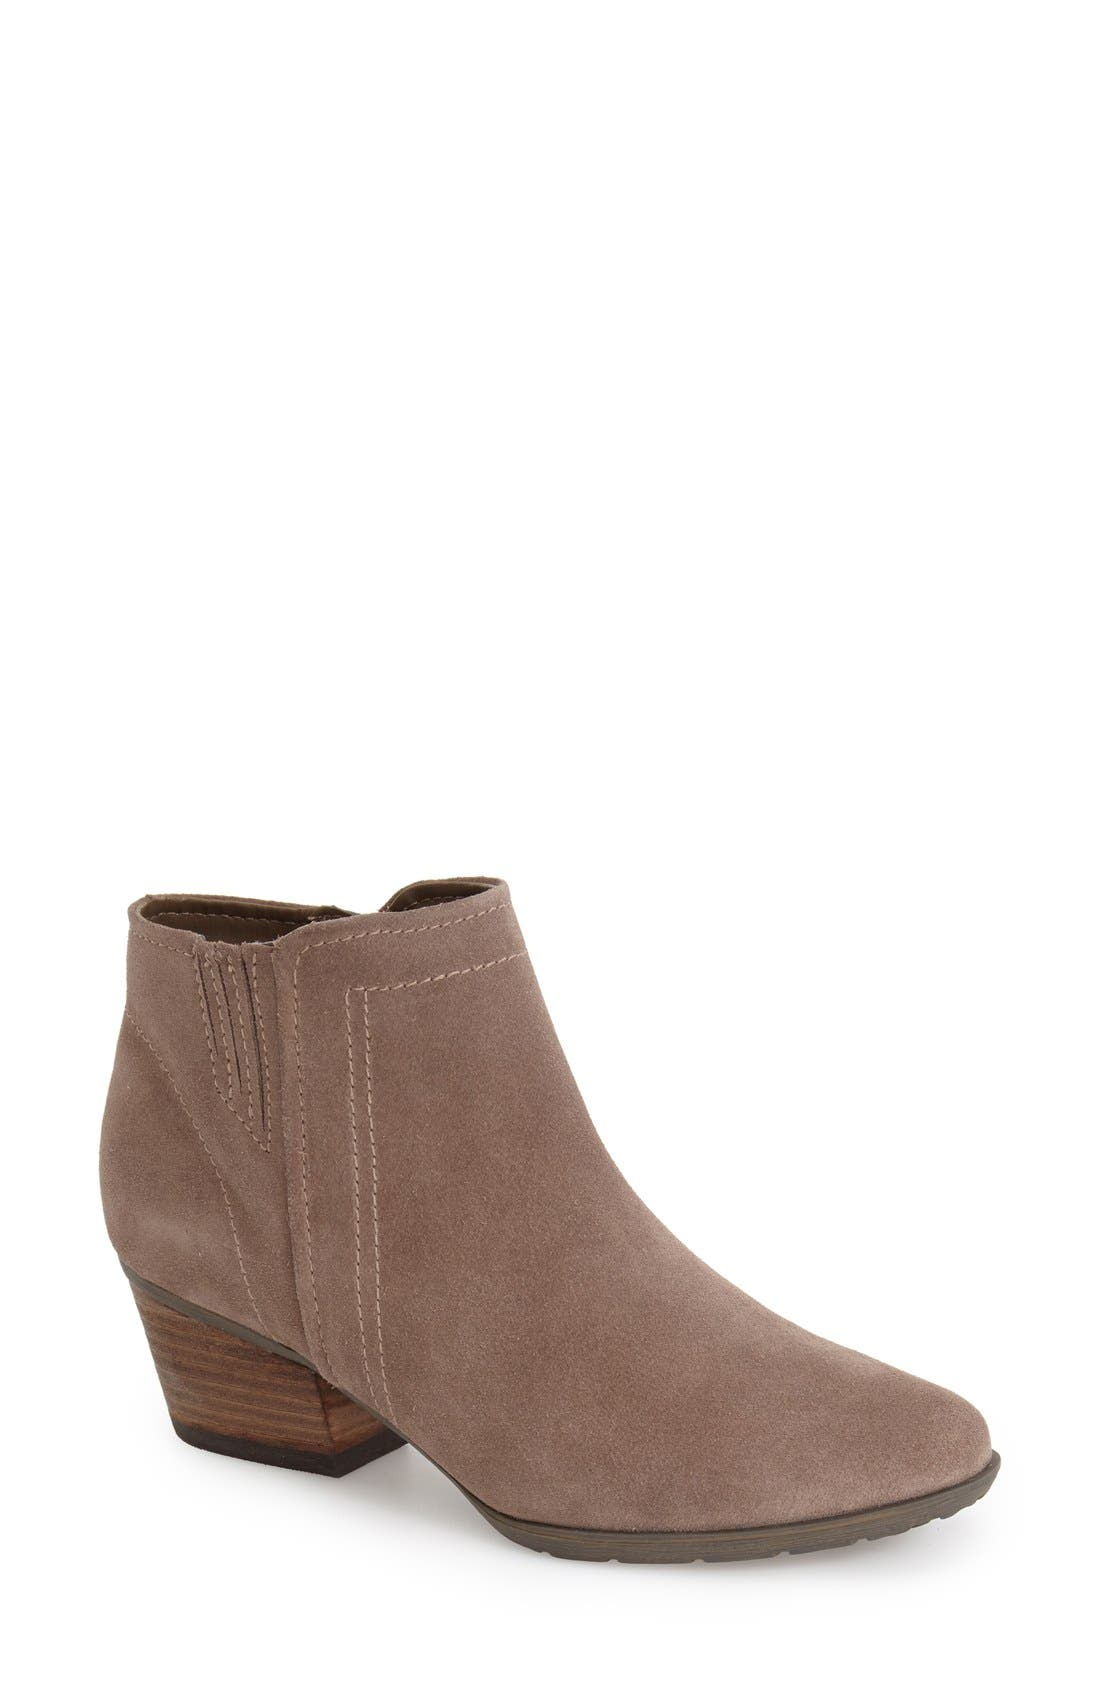 BLONDO 'Valli' Waterproof Bootie